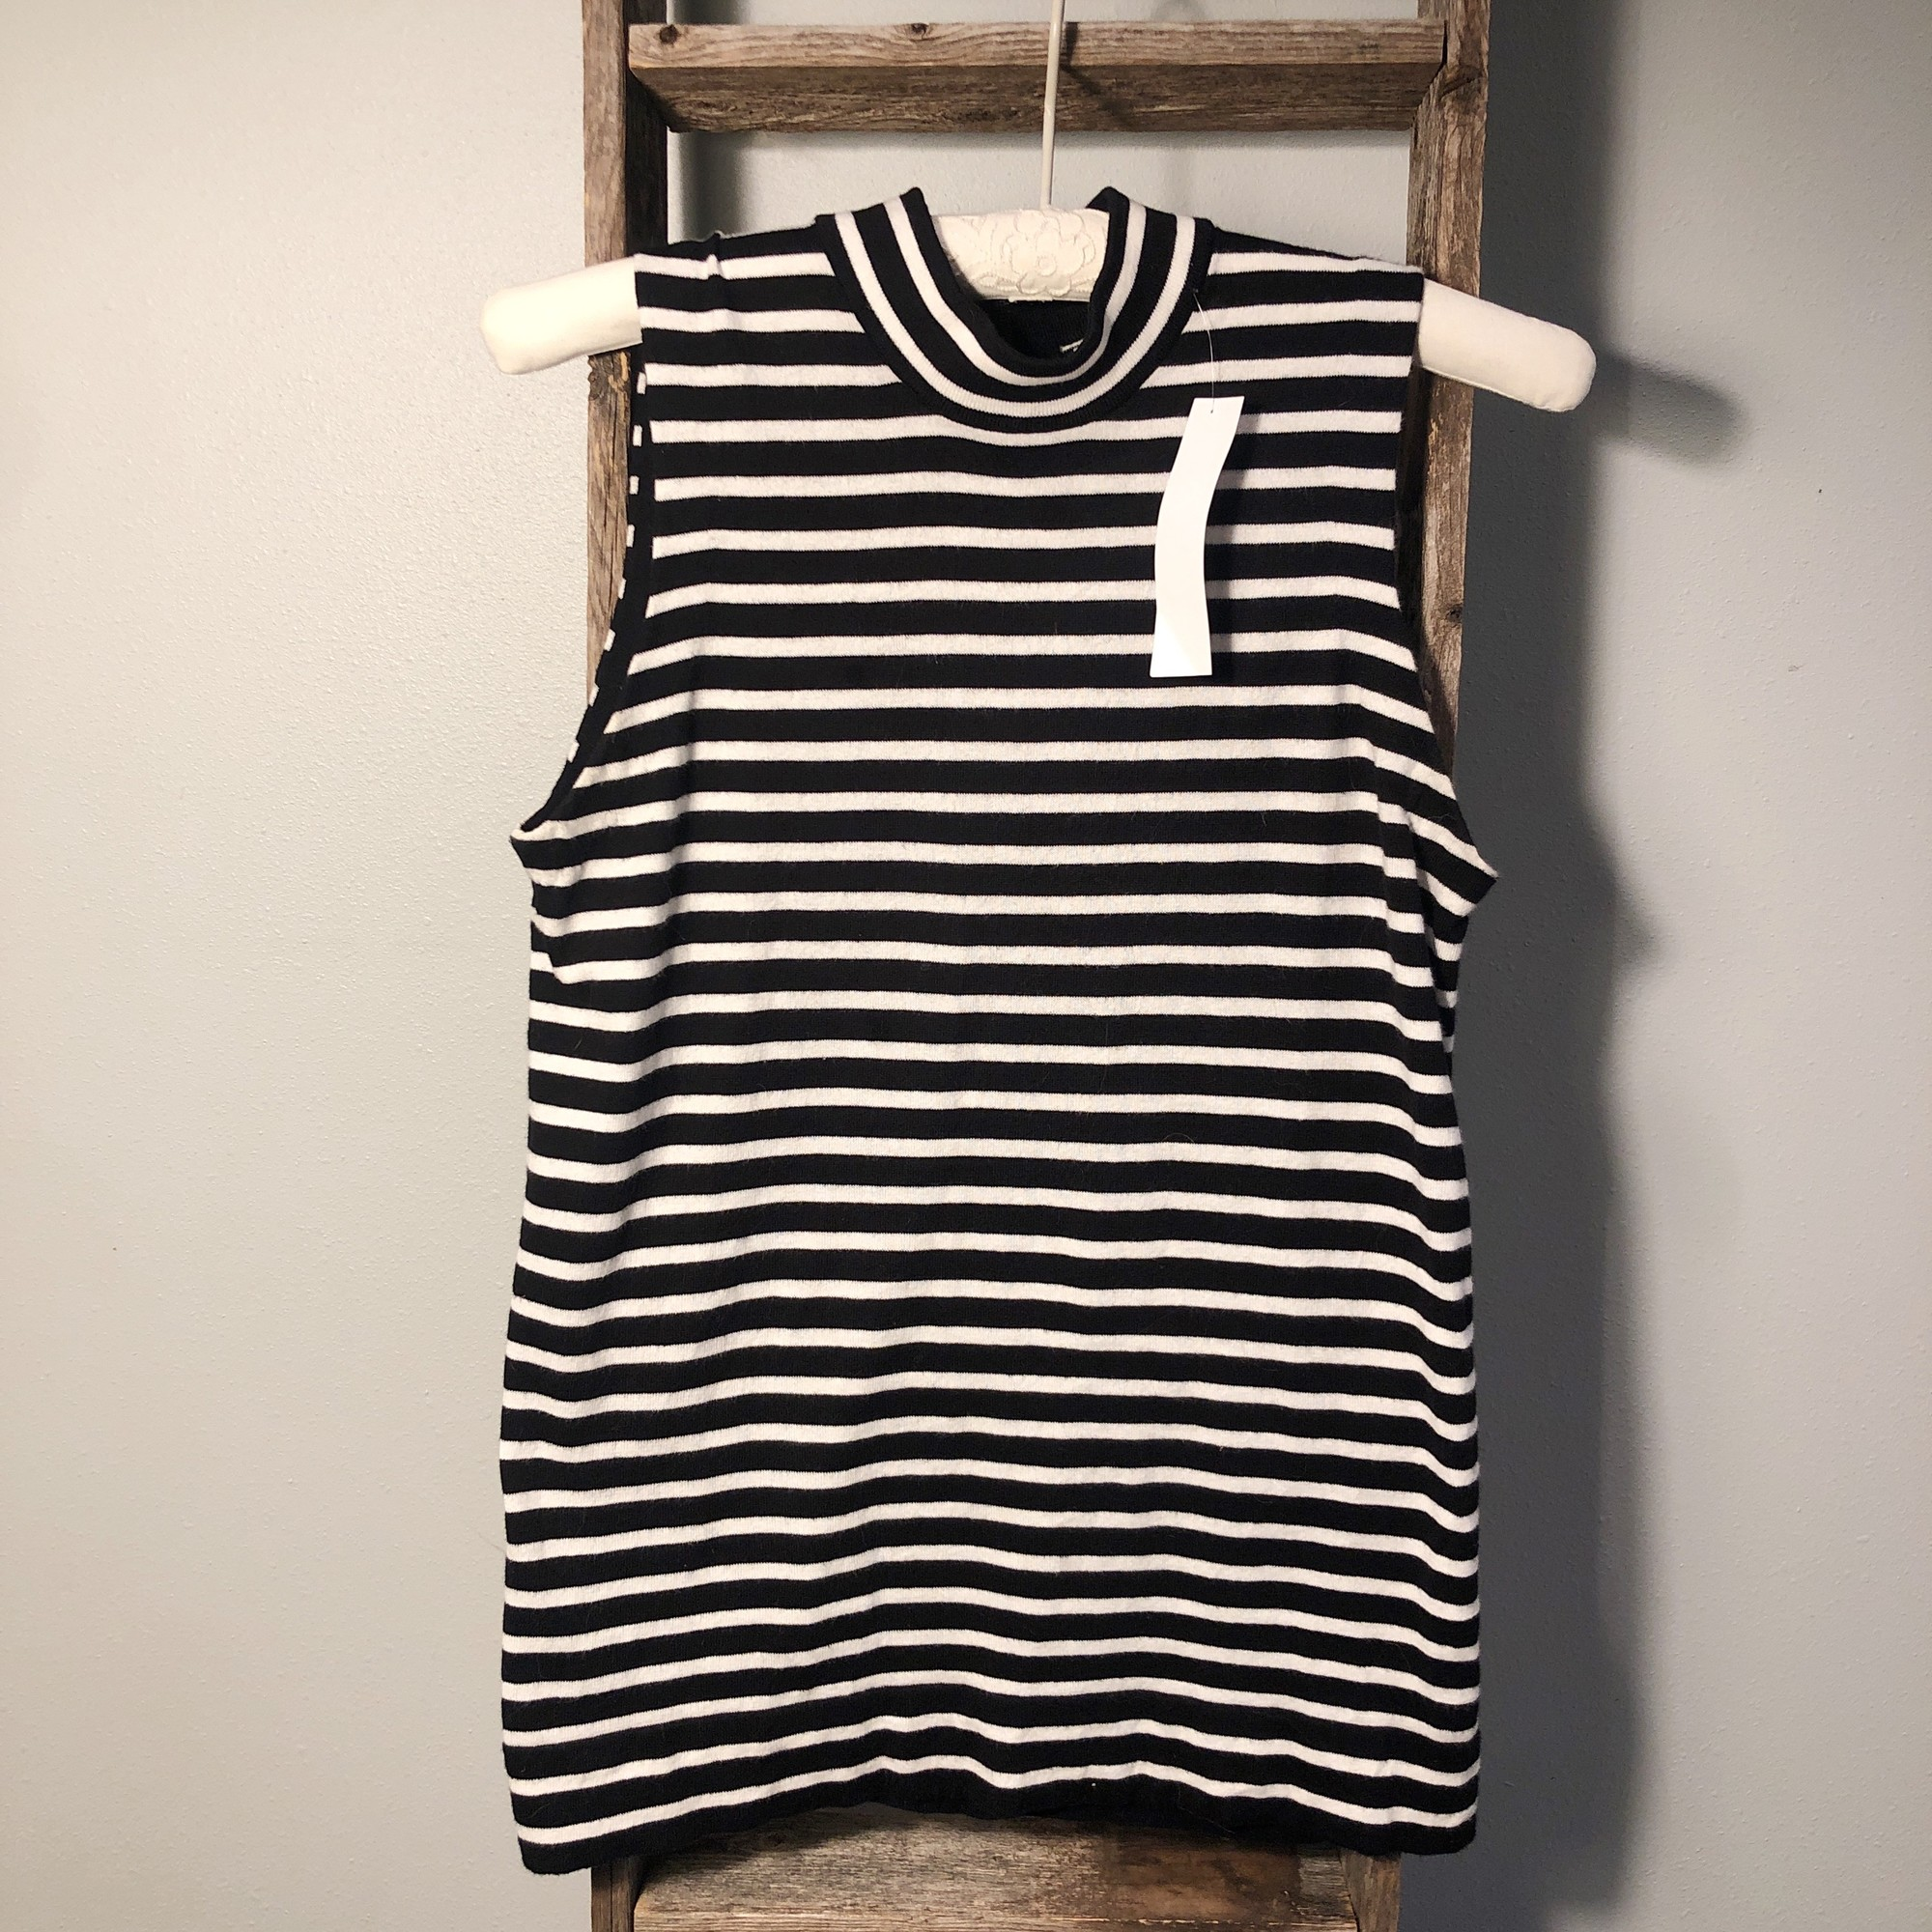 Perfect for layering a sweater over and  adorable zippered neck at the back